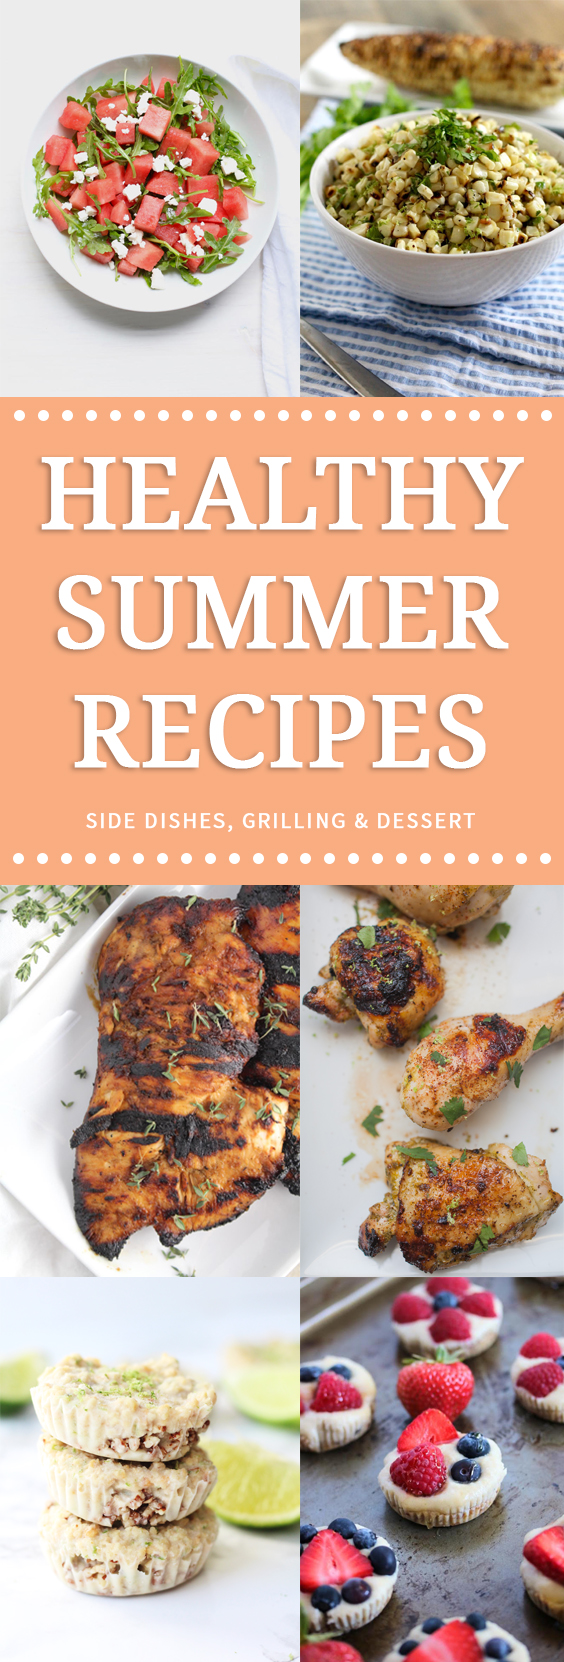 Healthy Summer Recipes: Main Dishes, Side Dishes, Salads and Desserts. Everything you need for a healthy and delicious summer meal! ll www.littlechefbigappetite.com